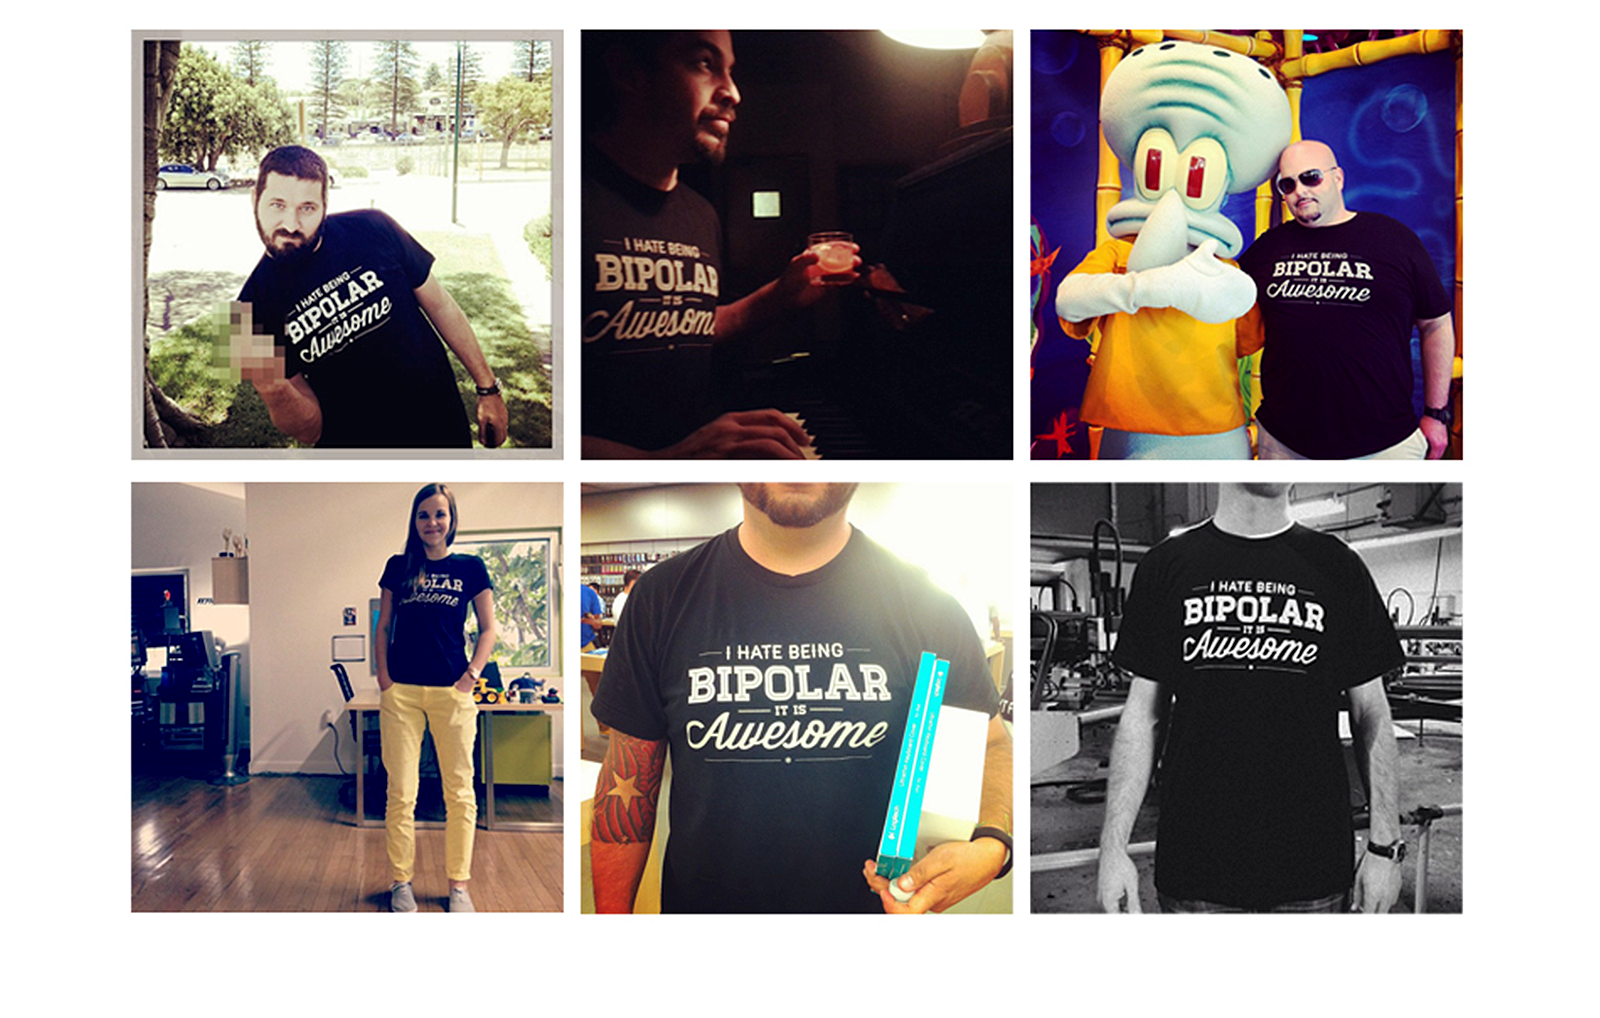 Diego Guevara - Bipolar Tee Around the World